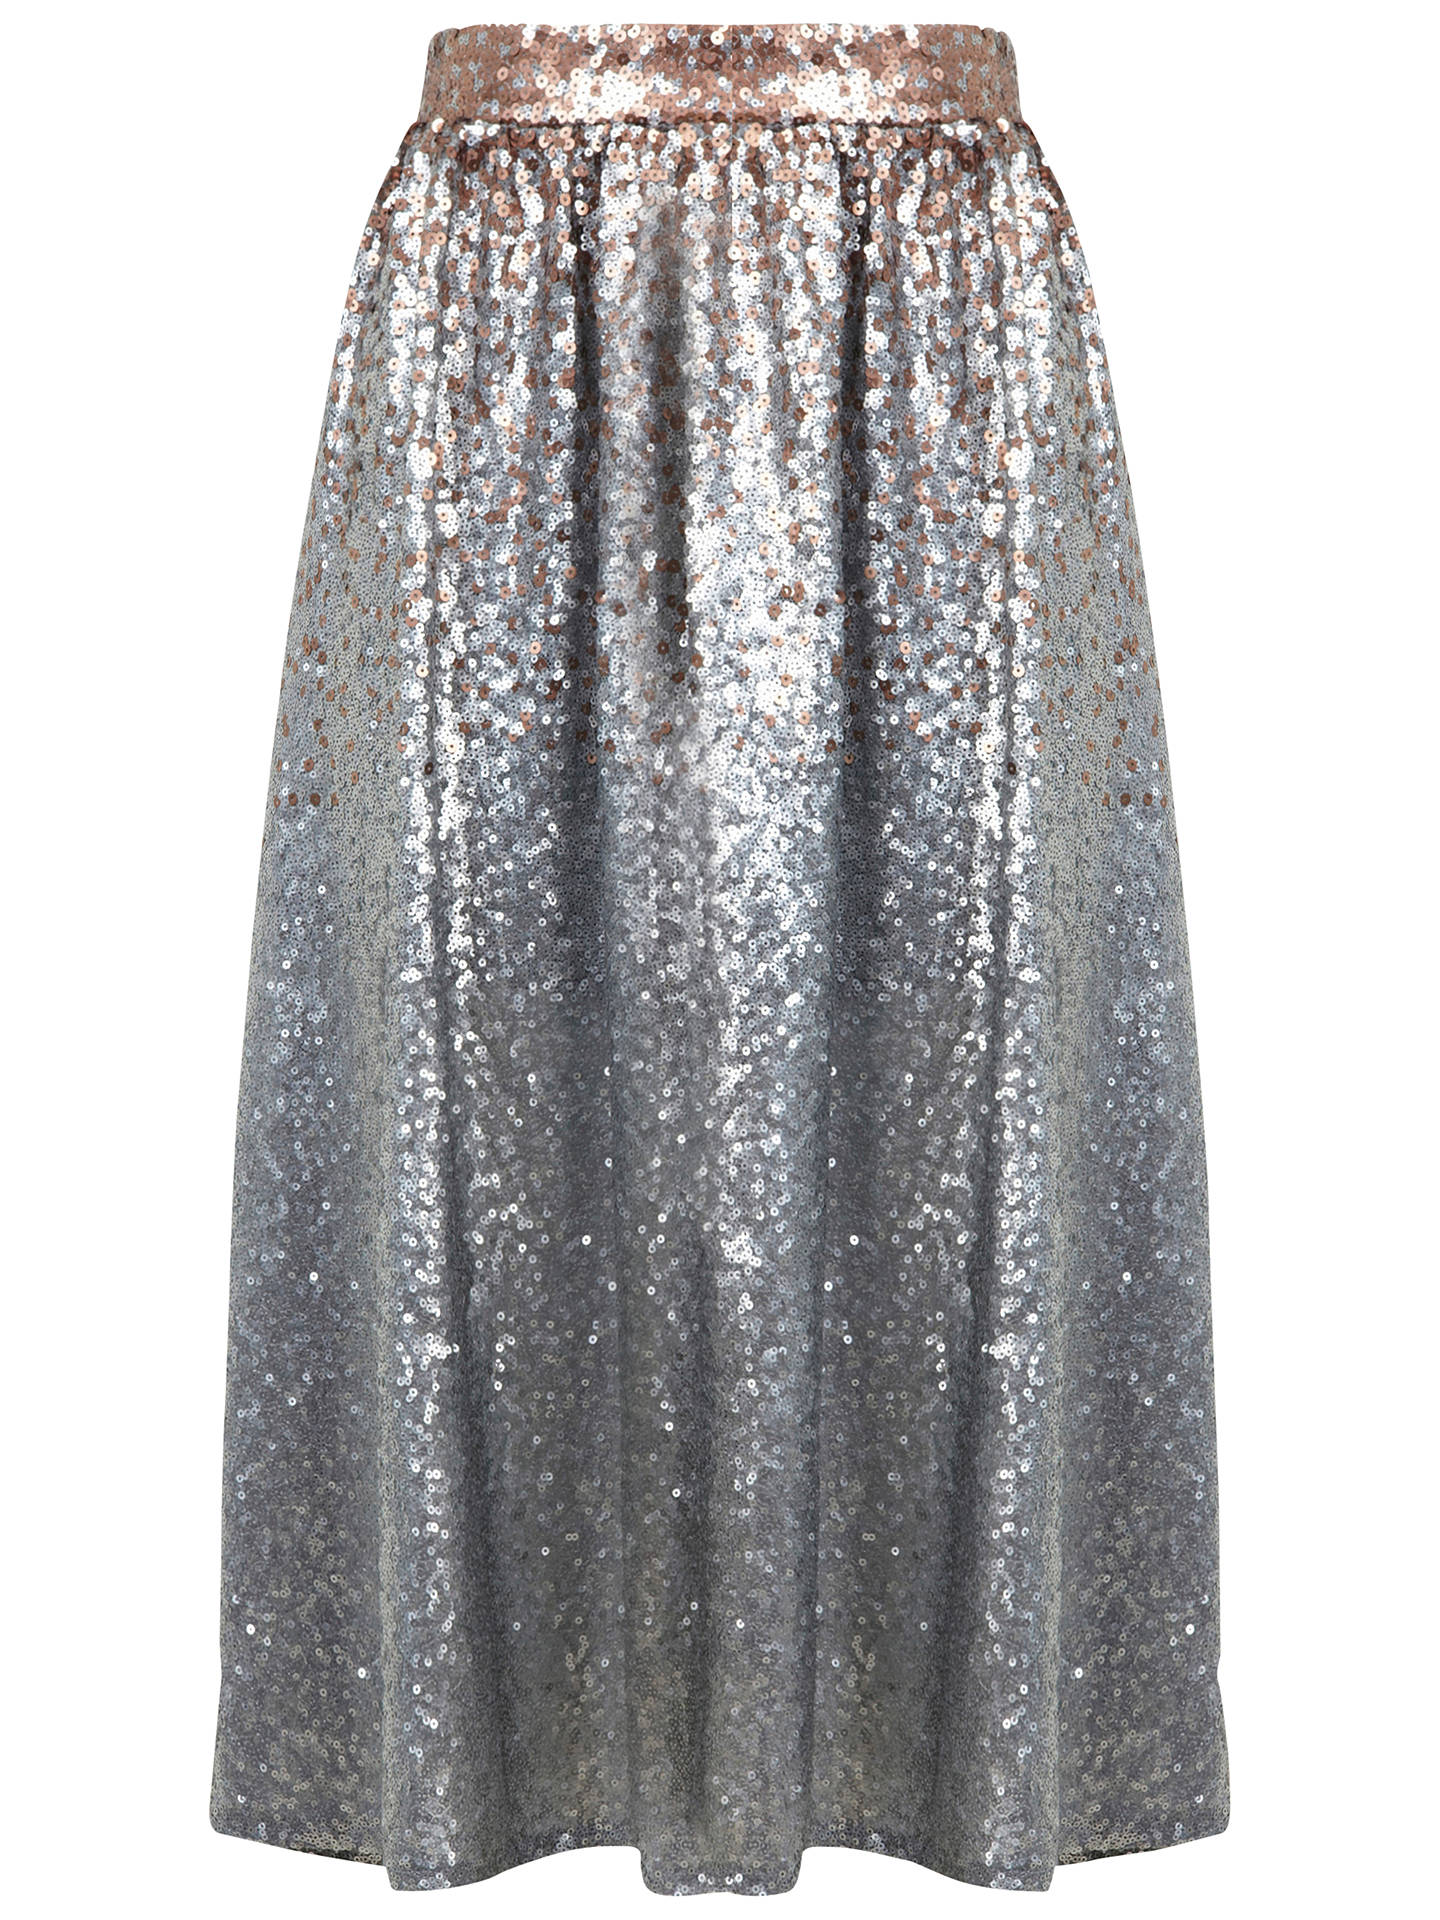 search for original clearance great deals 2017 Miss Selfridge Sequin Midi Skirt, Silver Grey at John Lewis ...